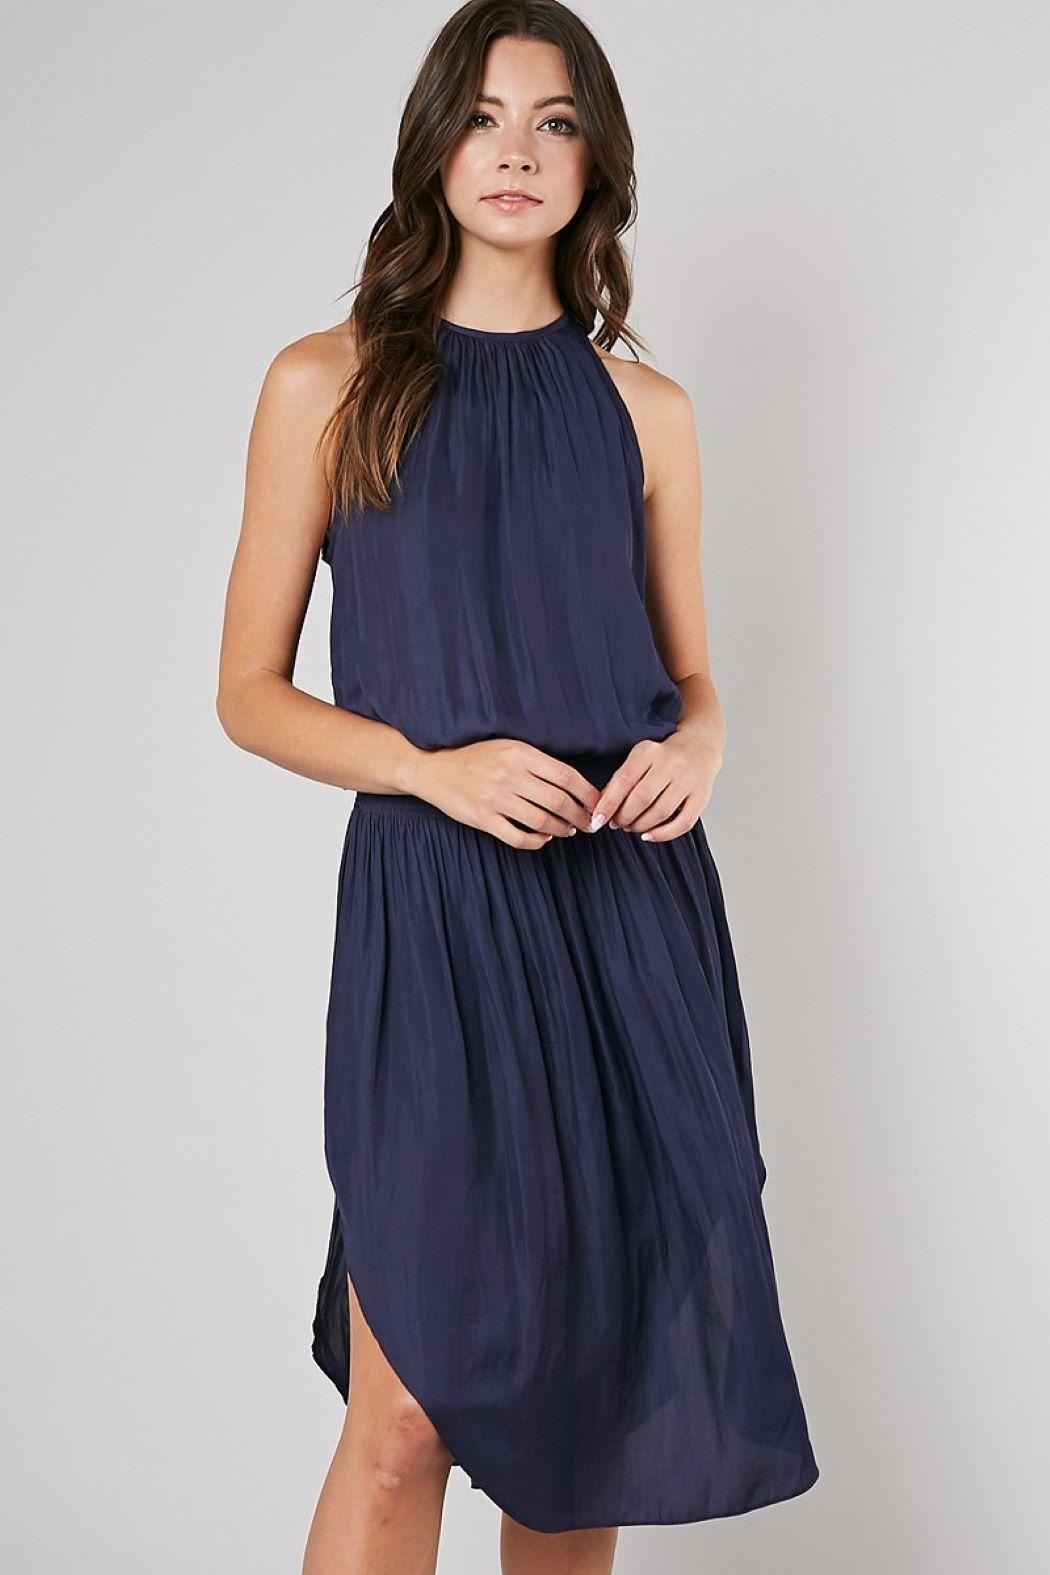 Unknown Factory Navy Dress - Main Image